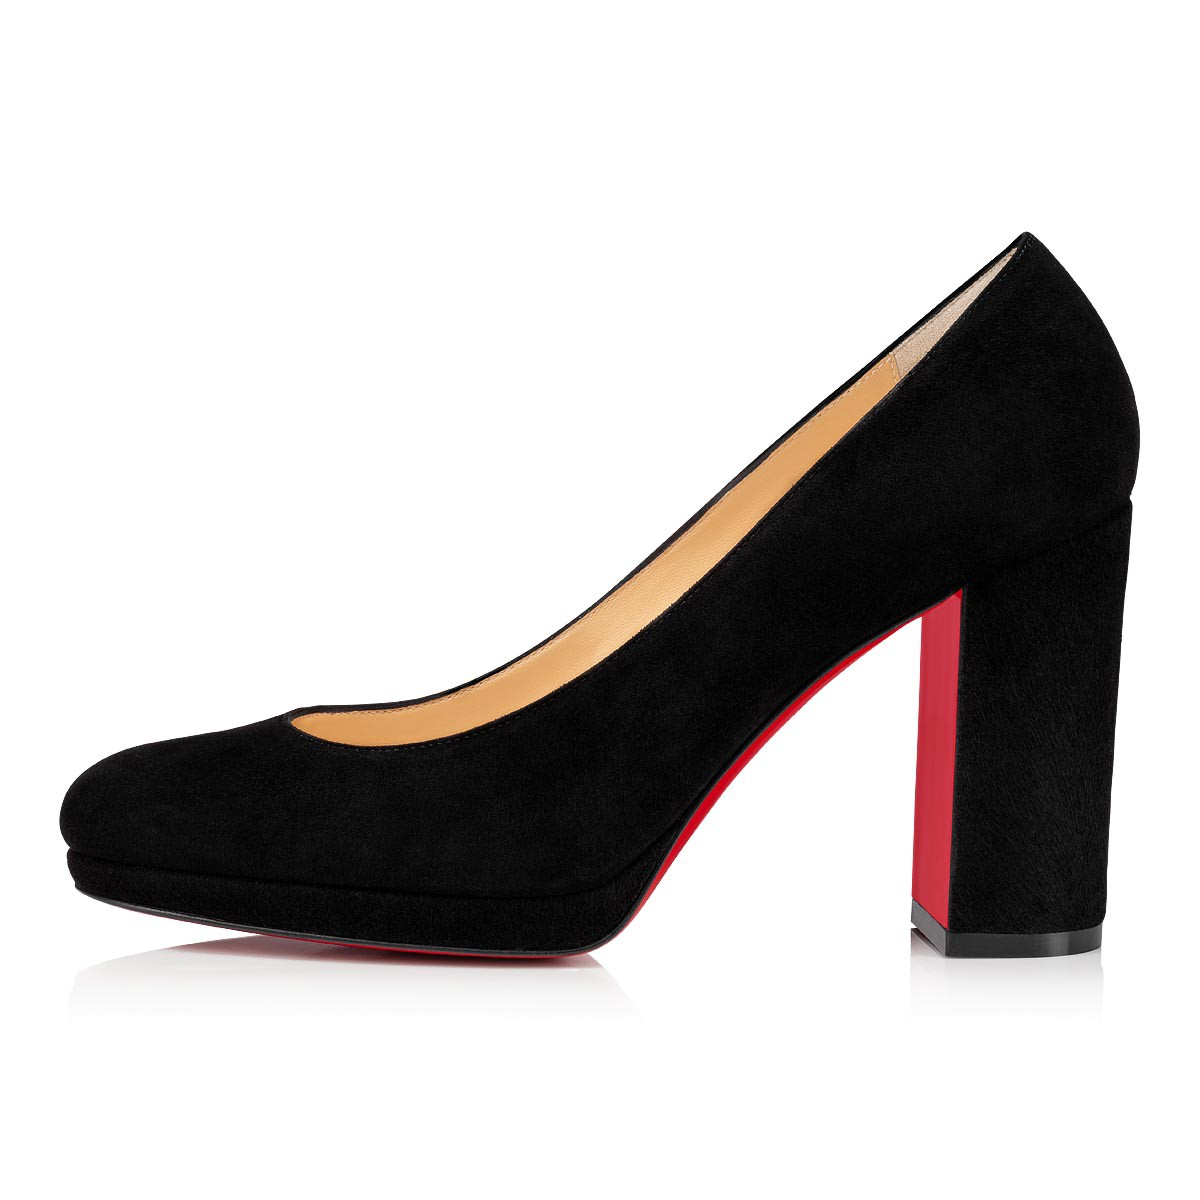 Shoes - Kabetts - Christian Louboutin